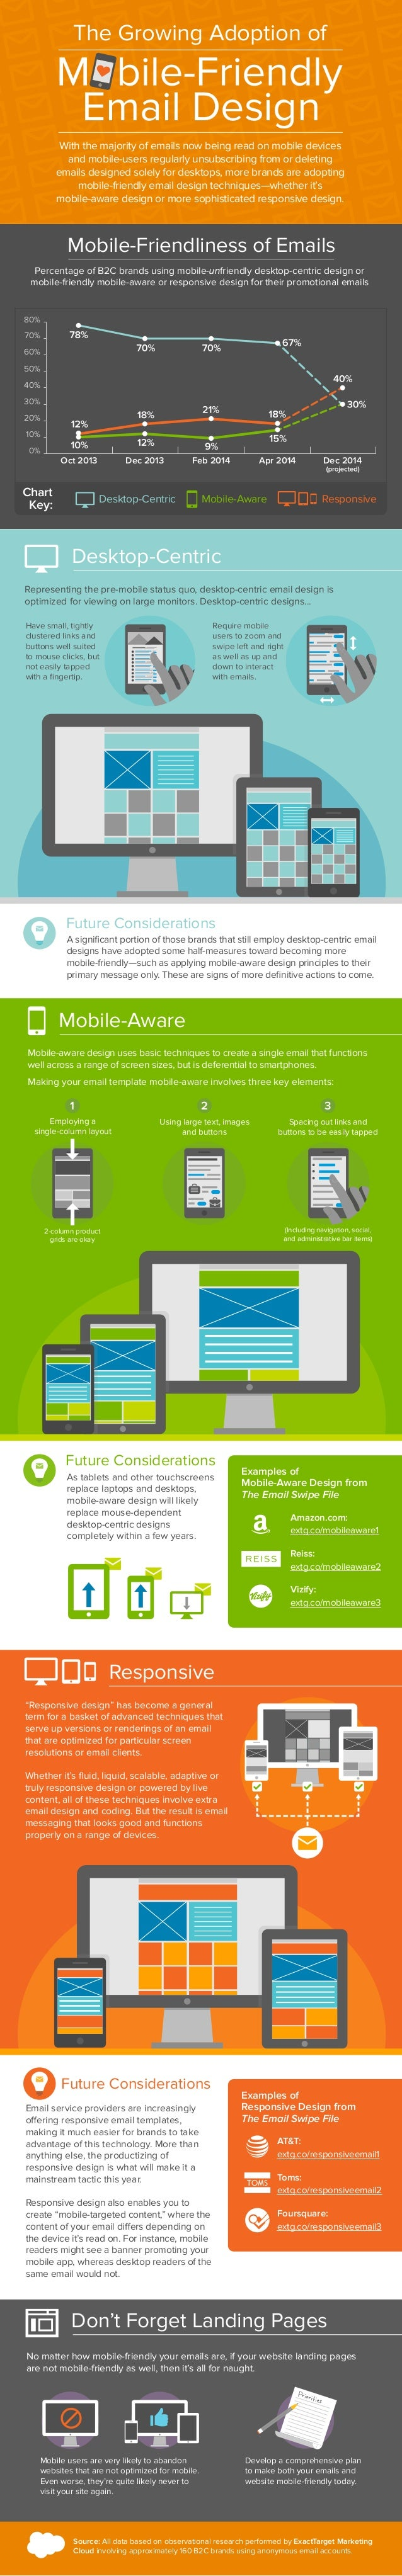 The Growing Adoption of Mobile-Friendly Email Design #Infographic